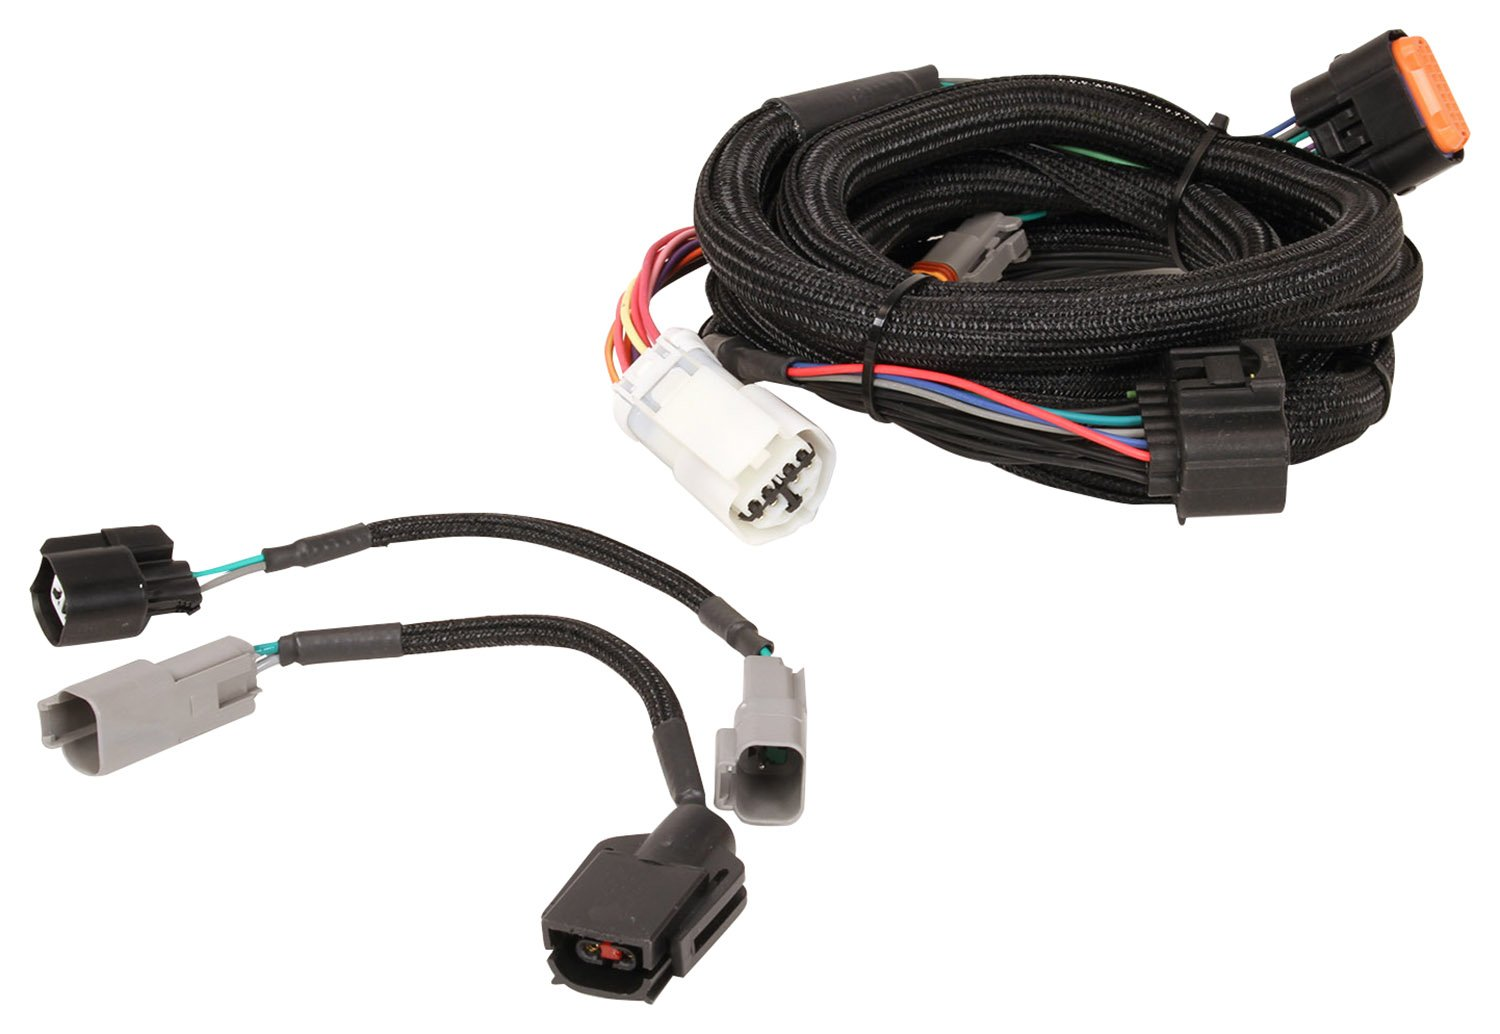 2772_v1 msd 2772 trans controller ford harness aode 4r70w, 1998 up msd 4r70w wiring harness at bayanpartner.co